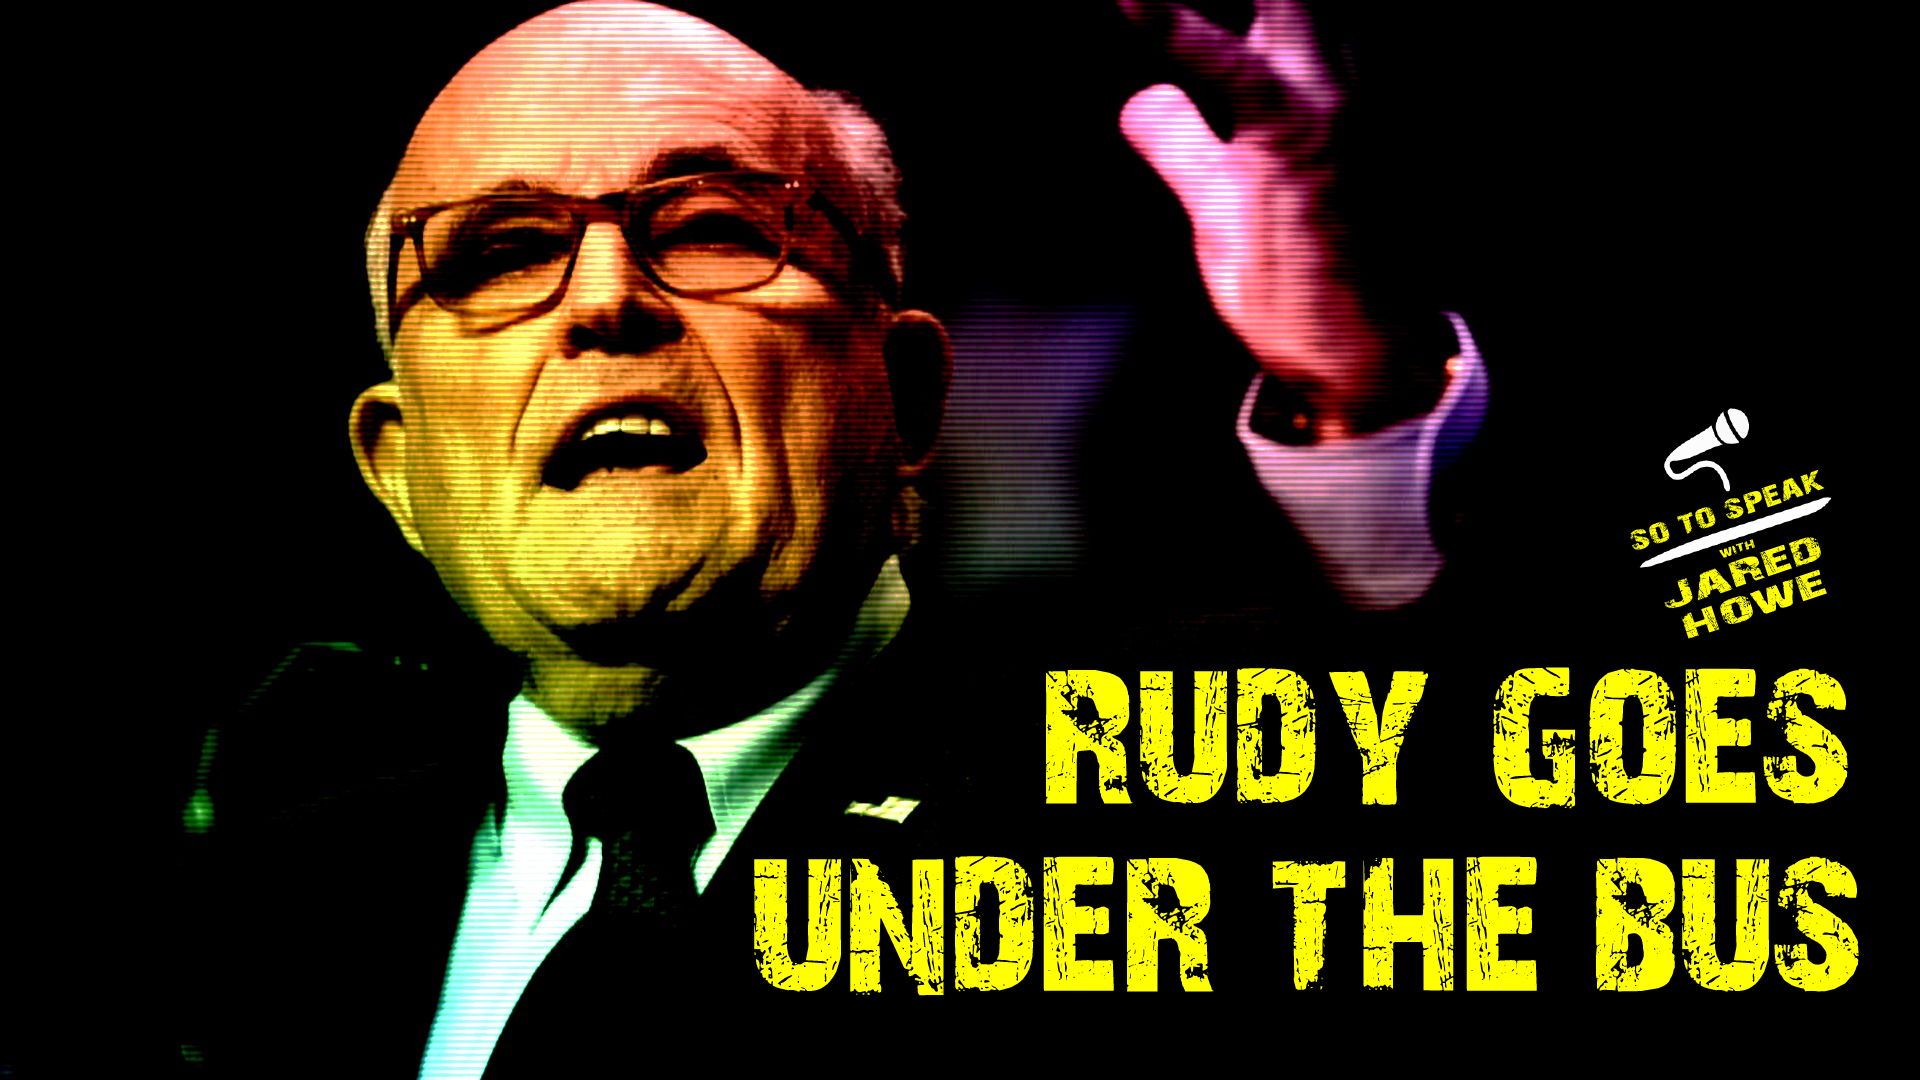 Rudy Giuliani is getting thrown under the bus by Mike Pompeo with regard to Ukraine